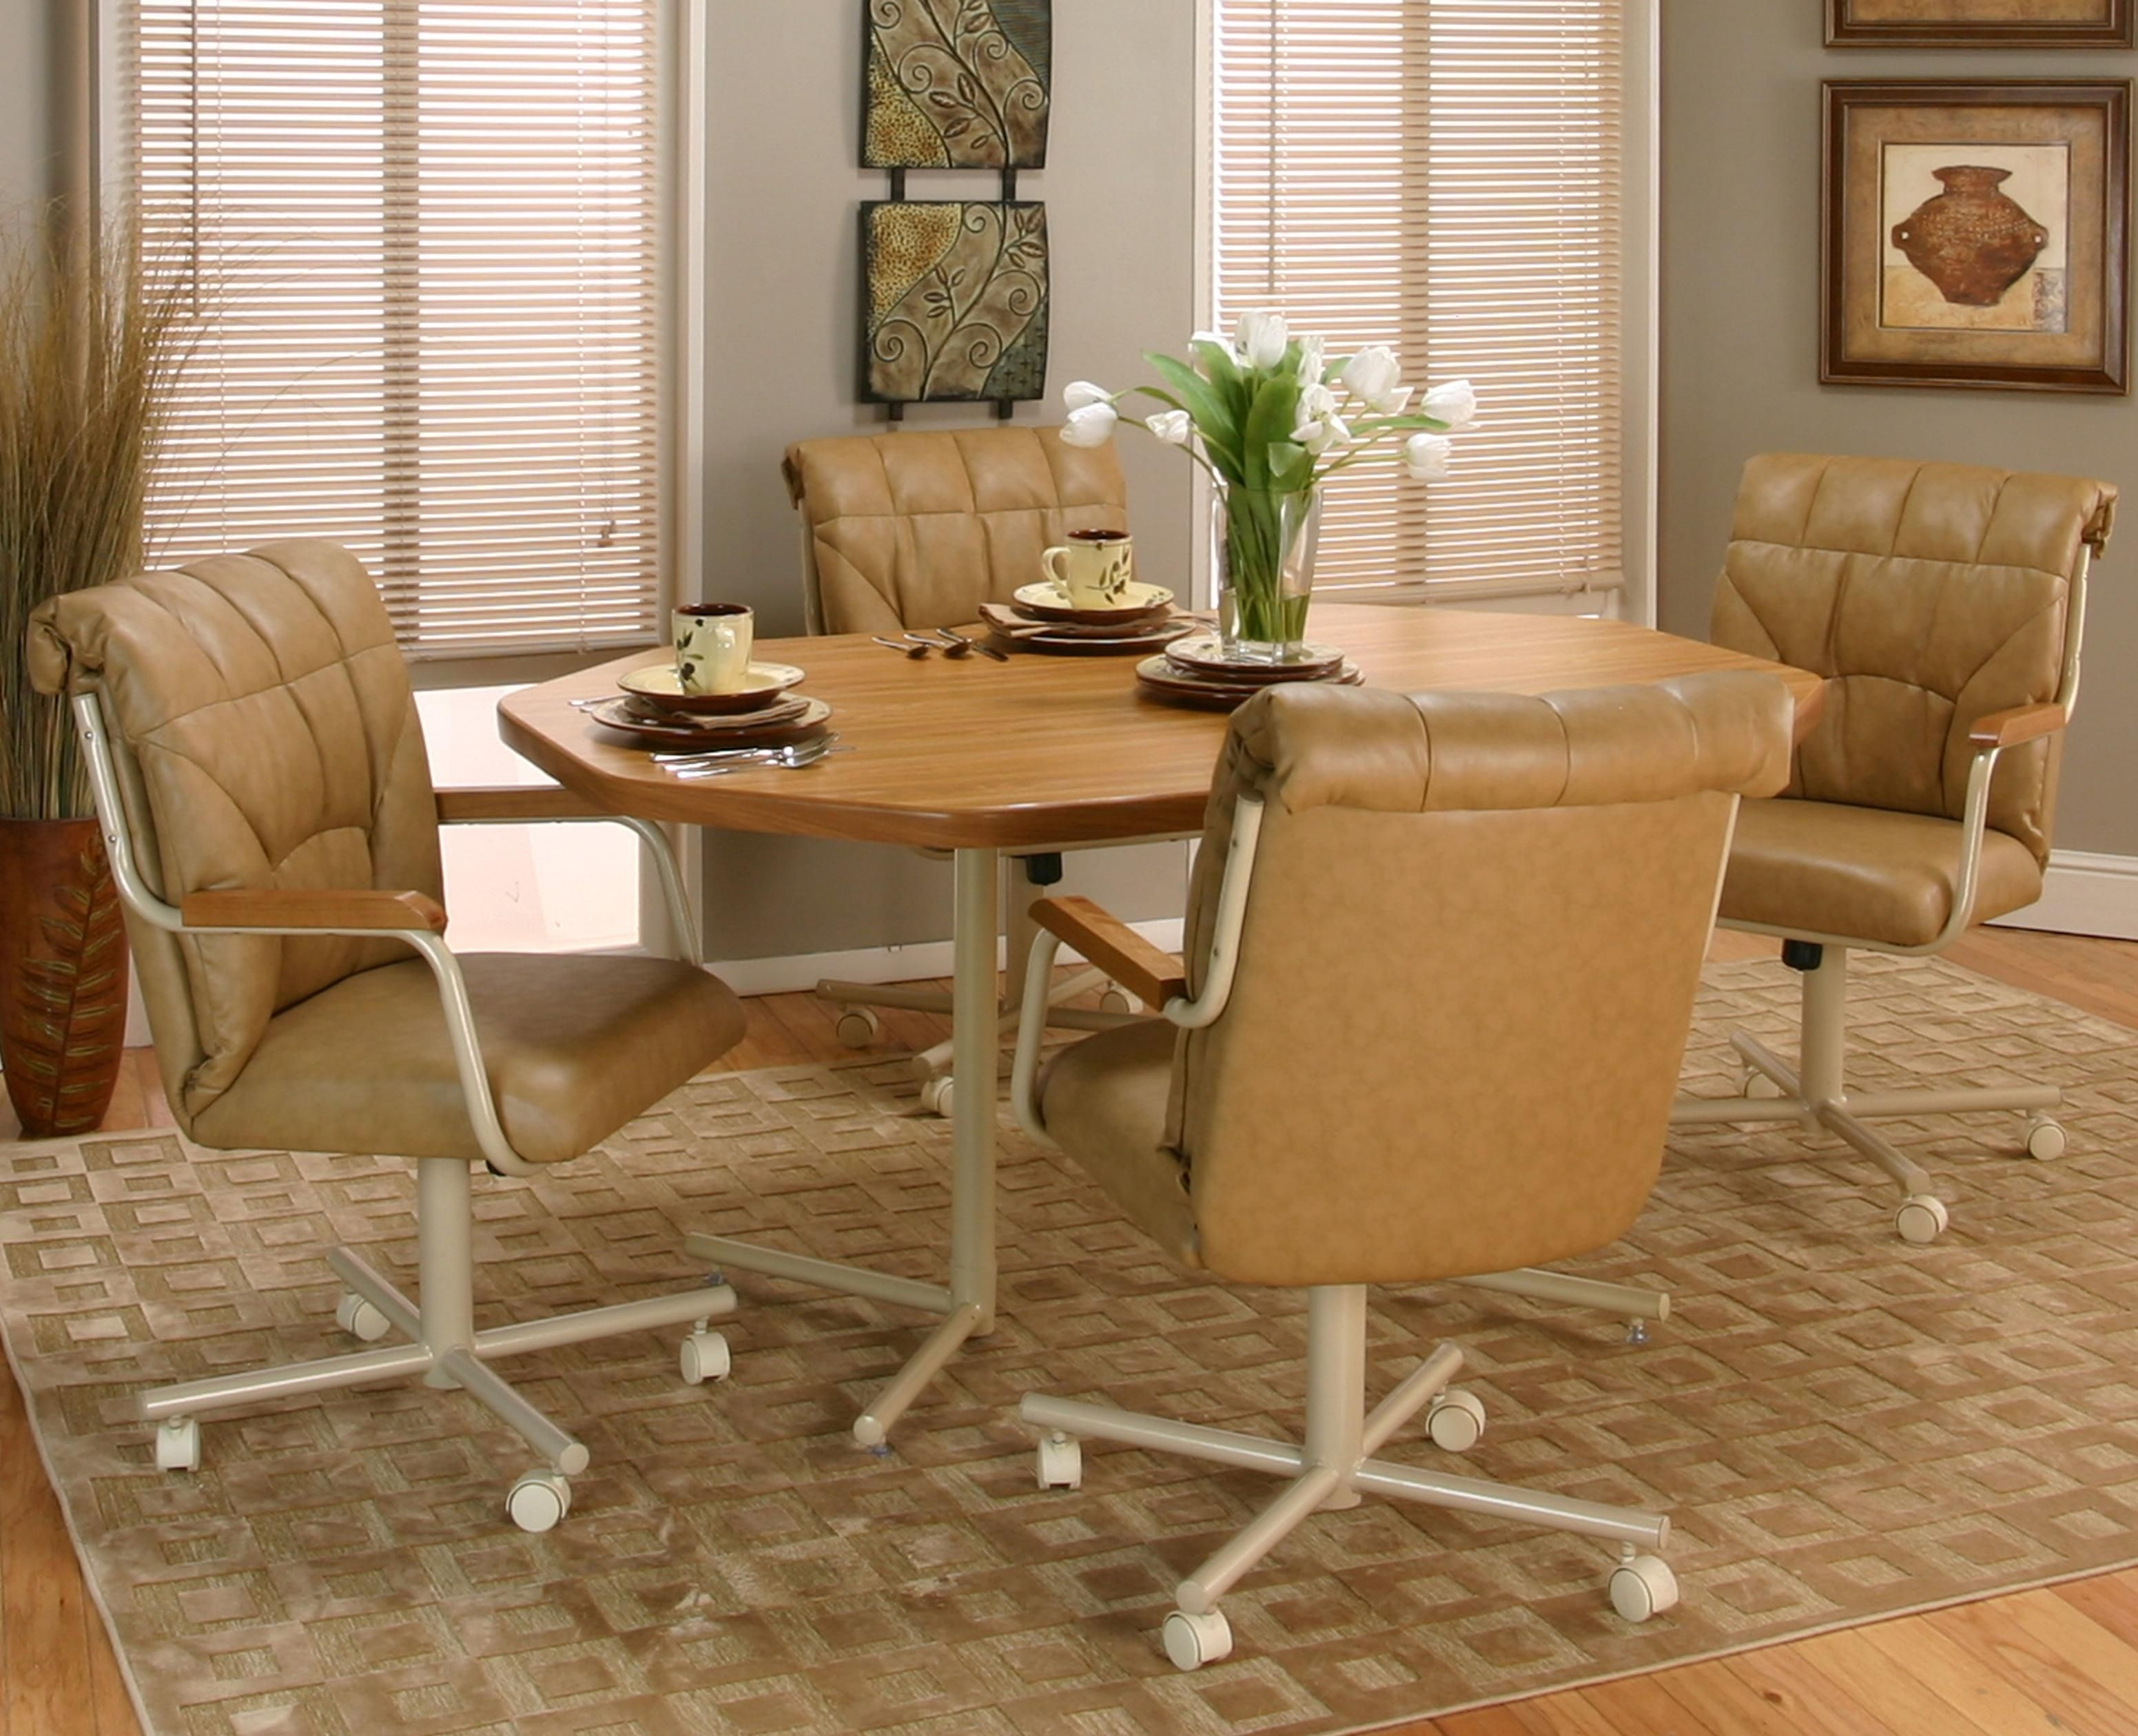 Cramco Inc Cramco Motion  Marlin Tiltswivel Dining Chair With Casters  Value City Furniture